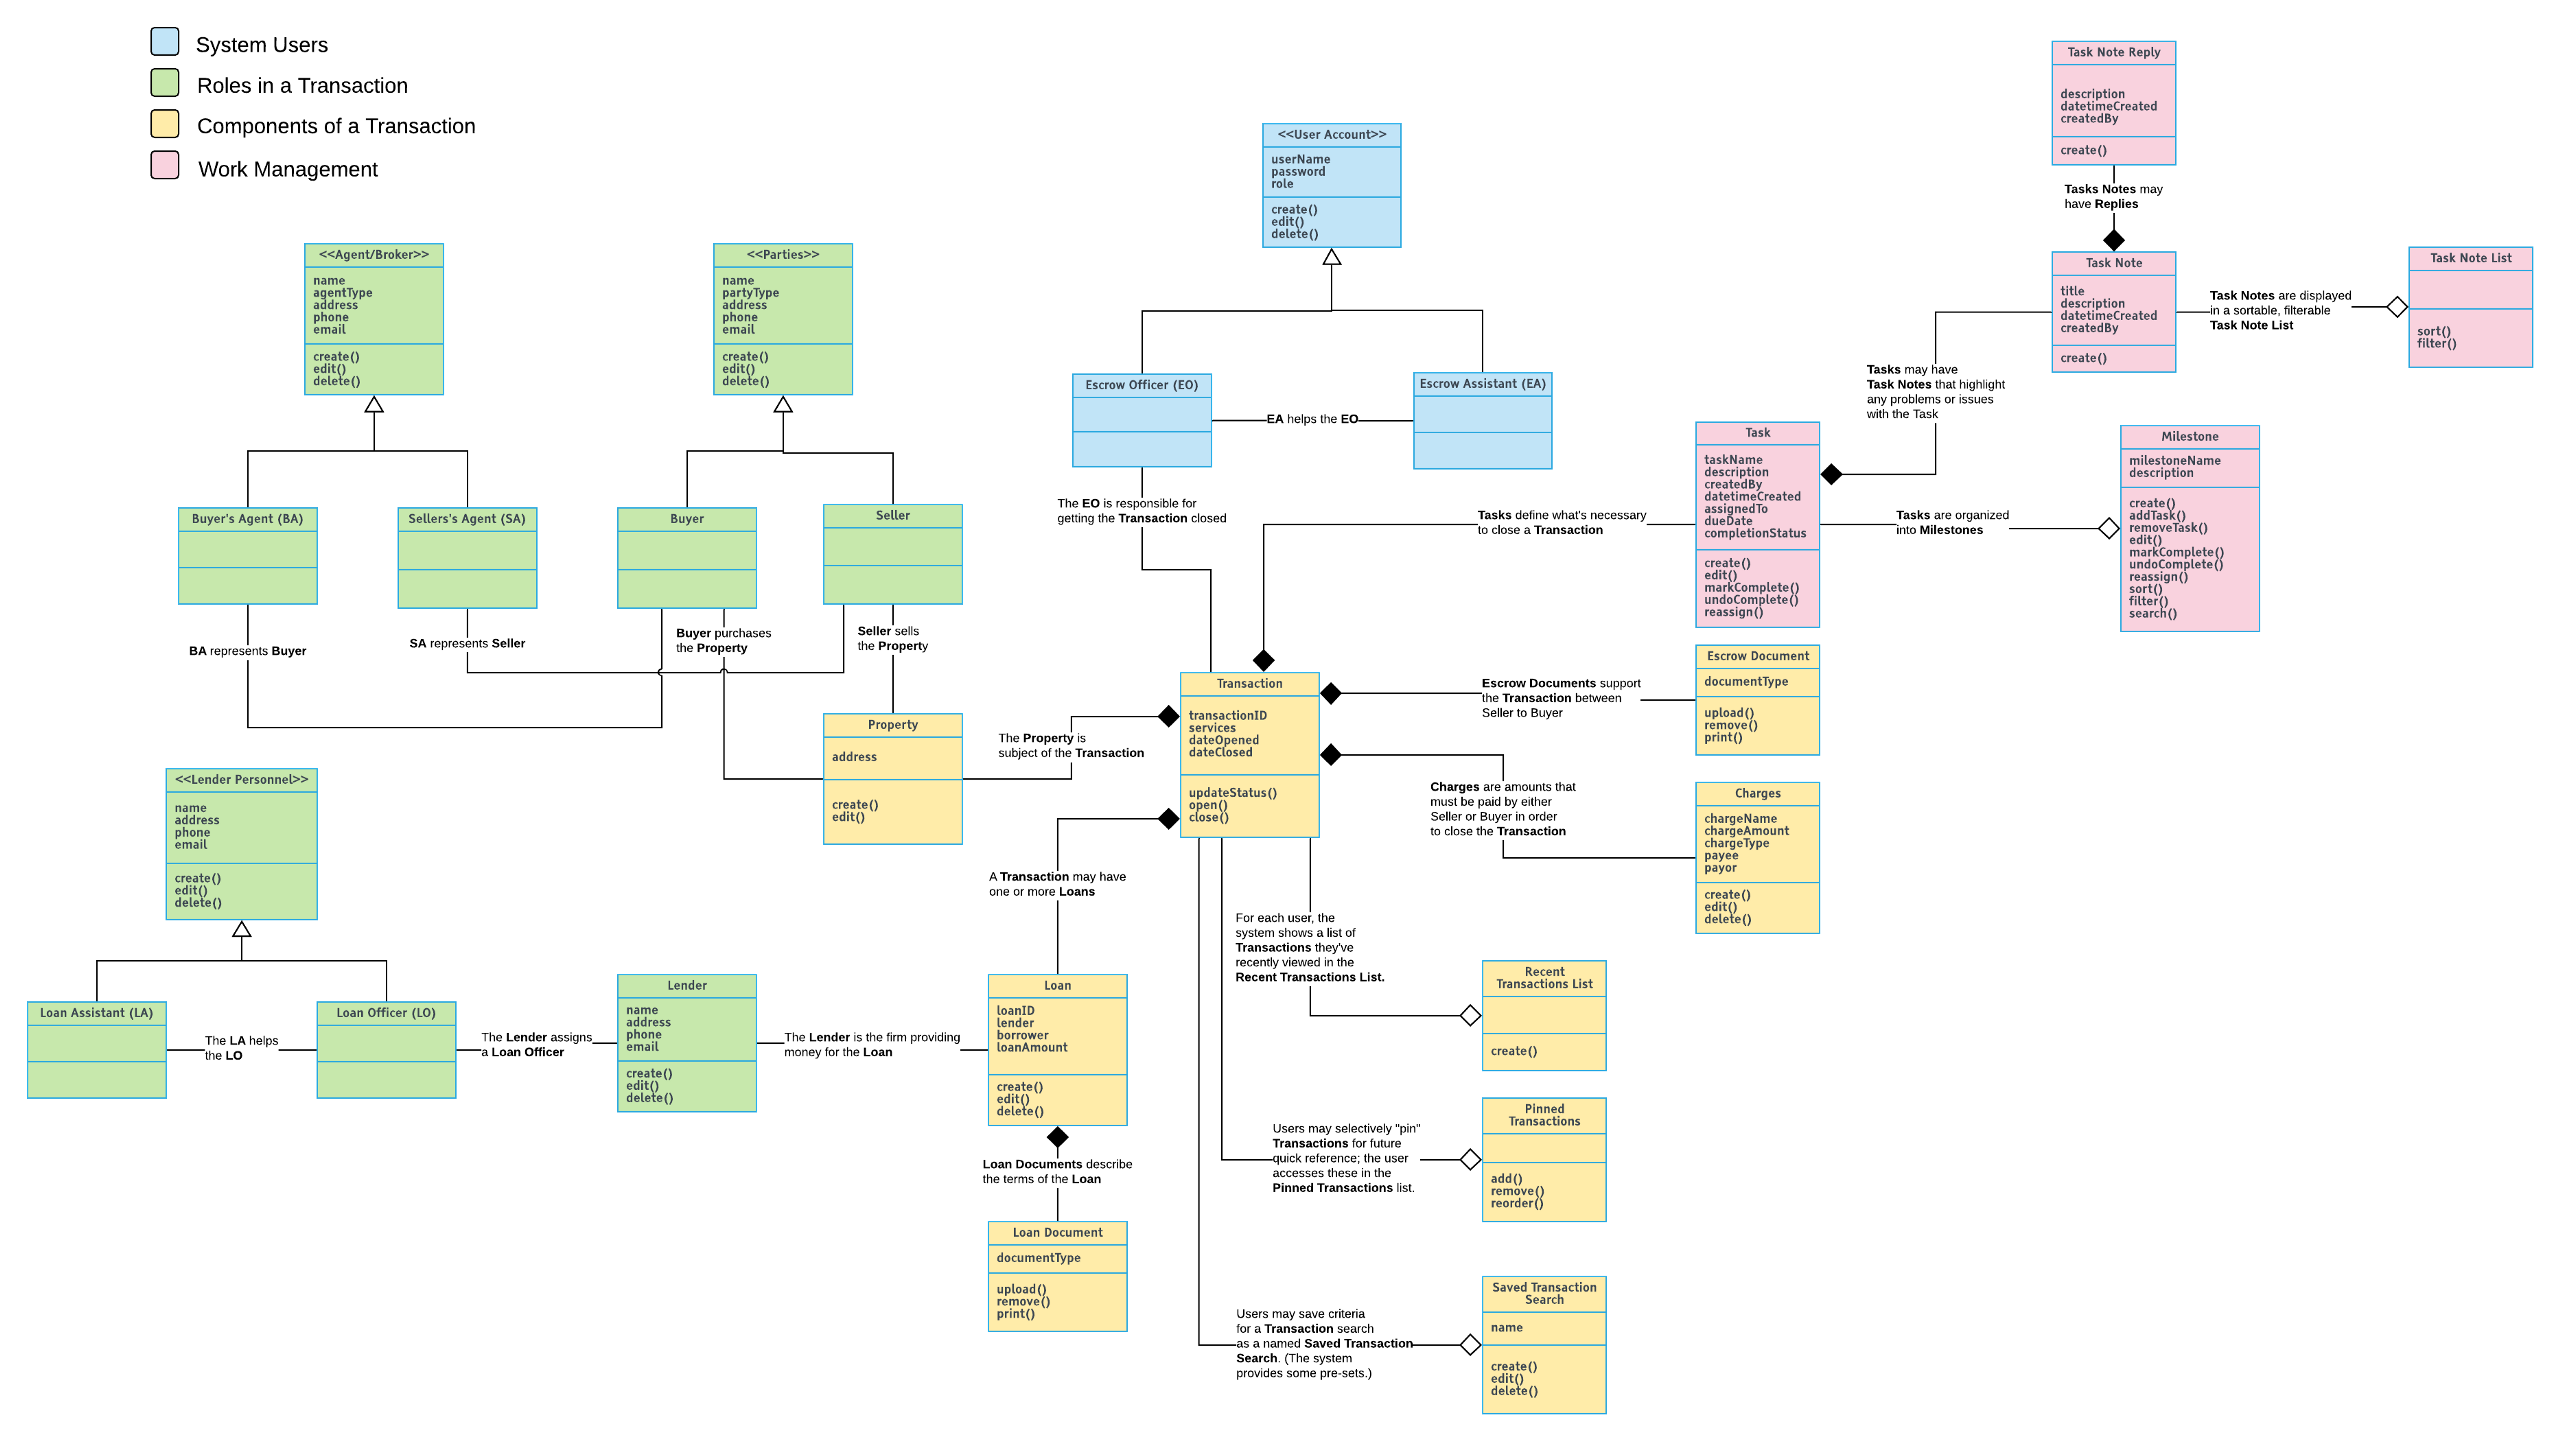 Narrative Object Model for an enterprise workflow management system.